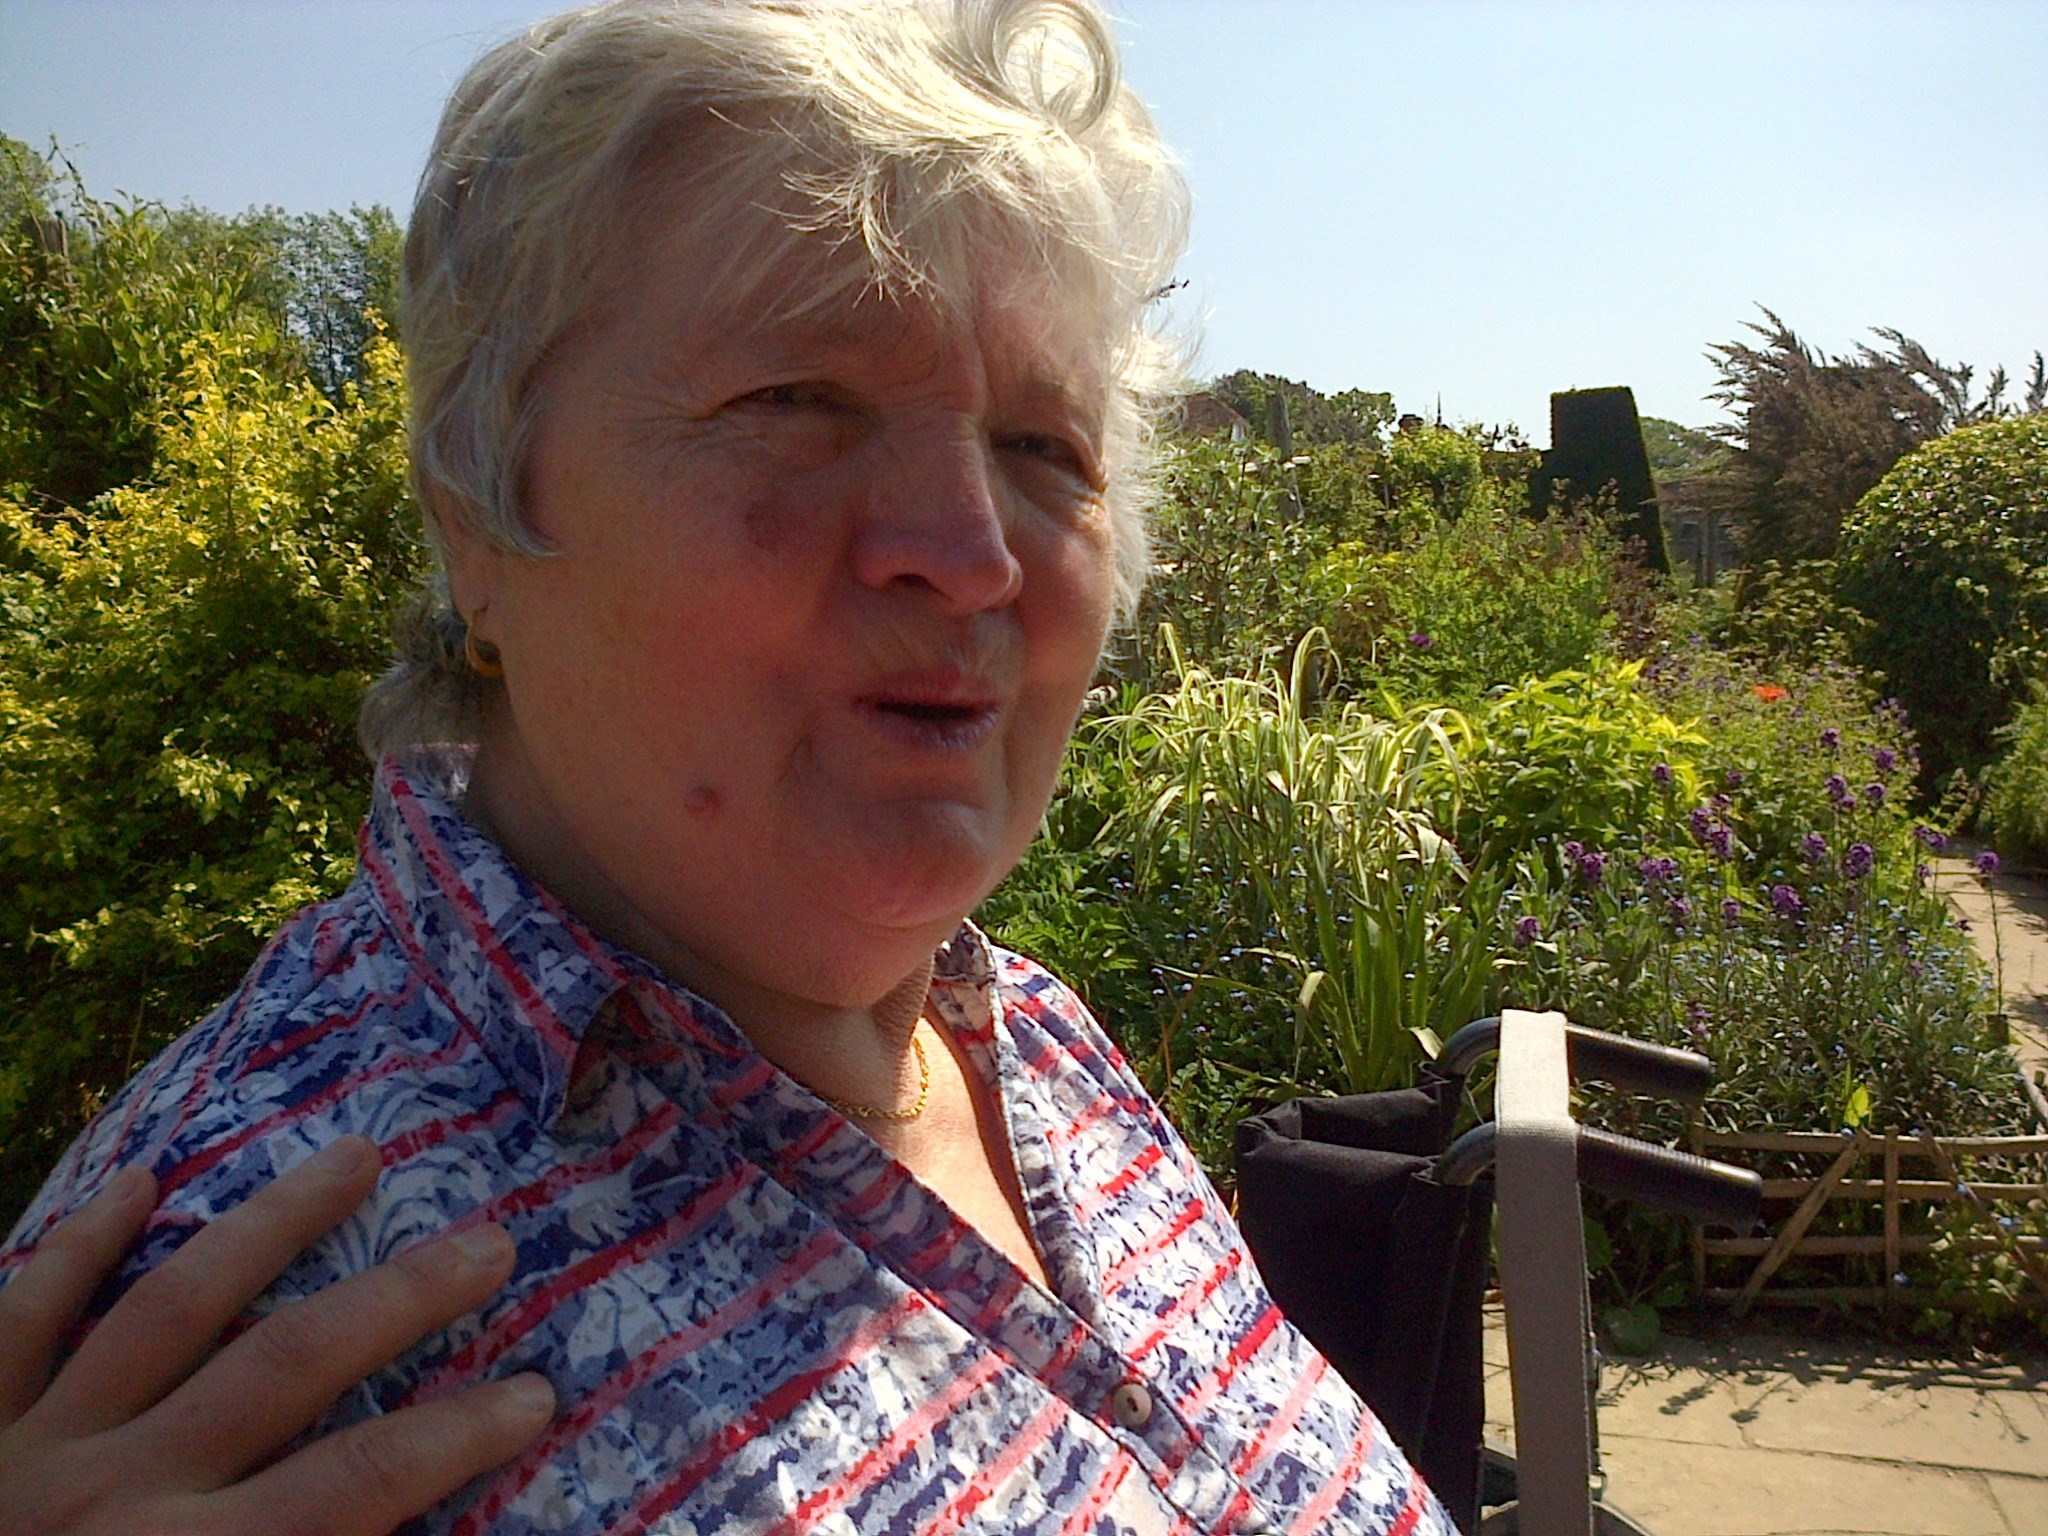 Mum at Great Dixter 2014